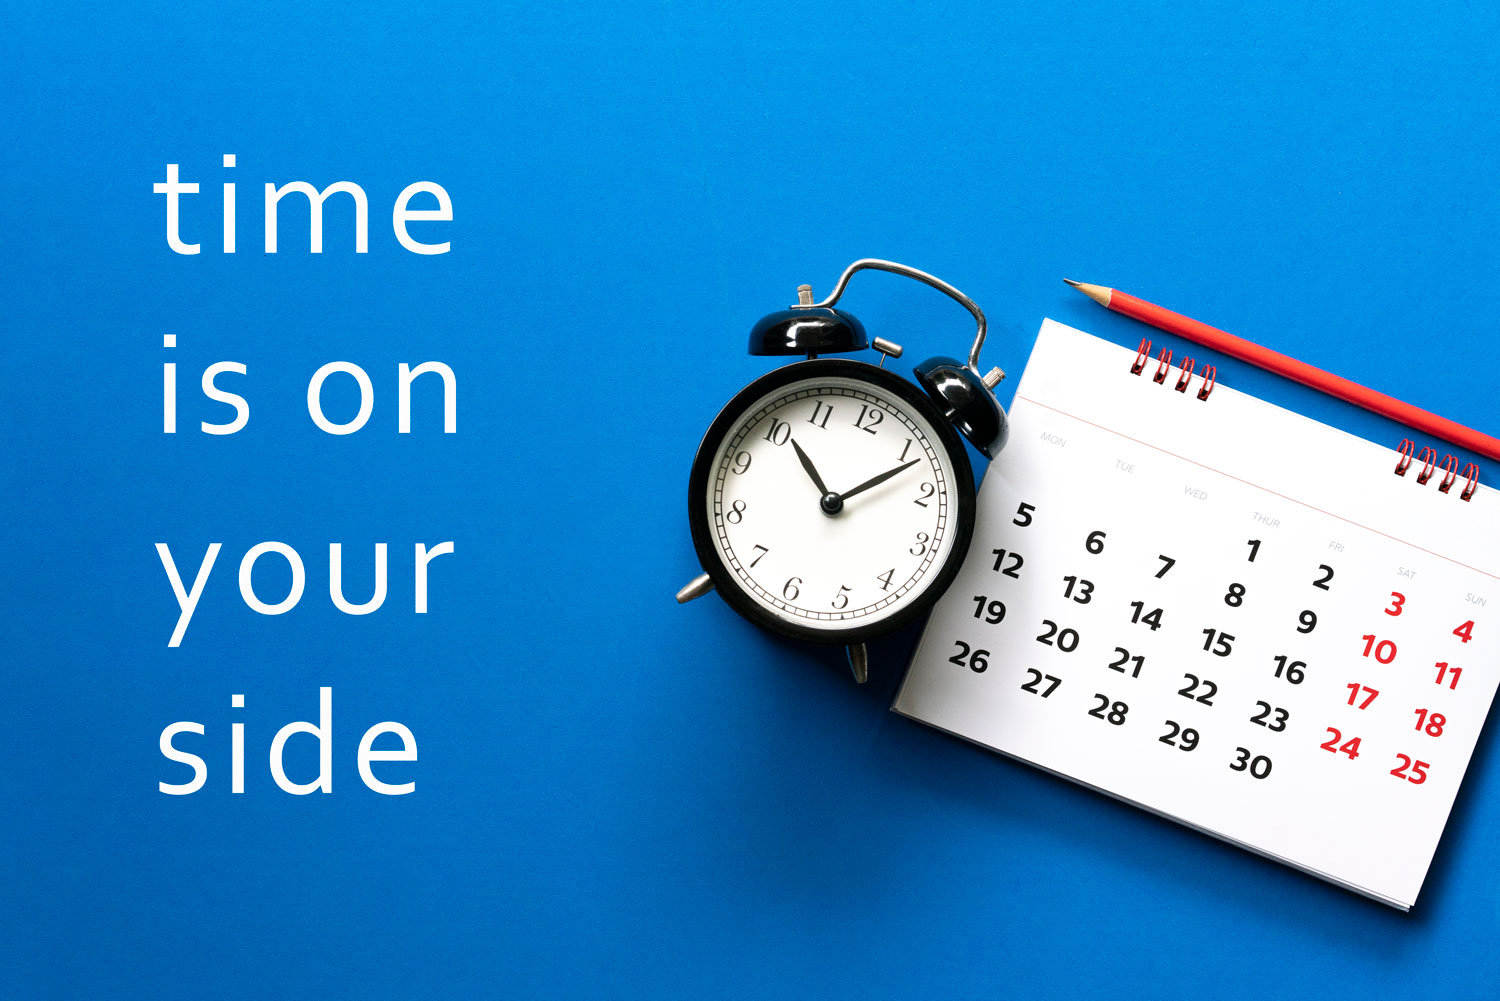 time is on your side clock and calendar